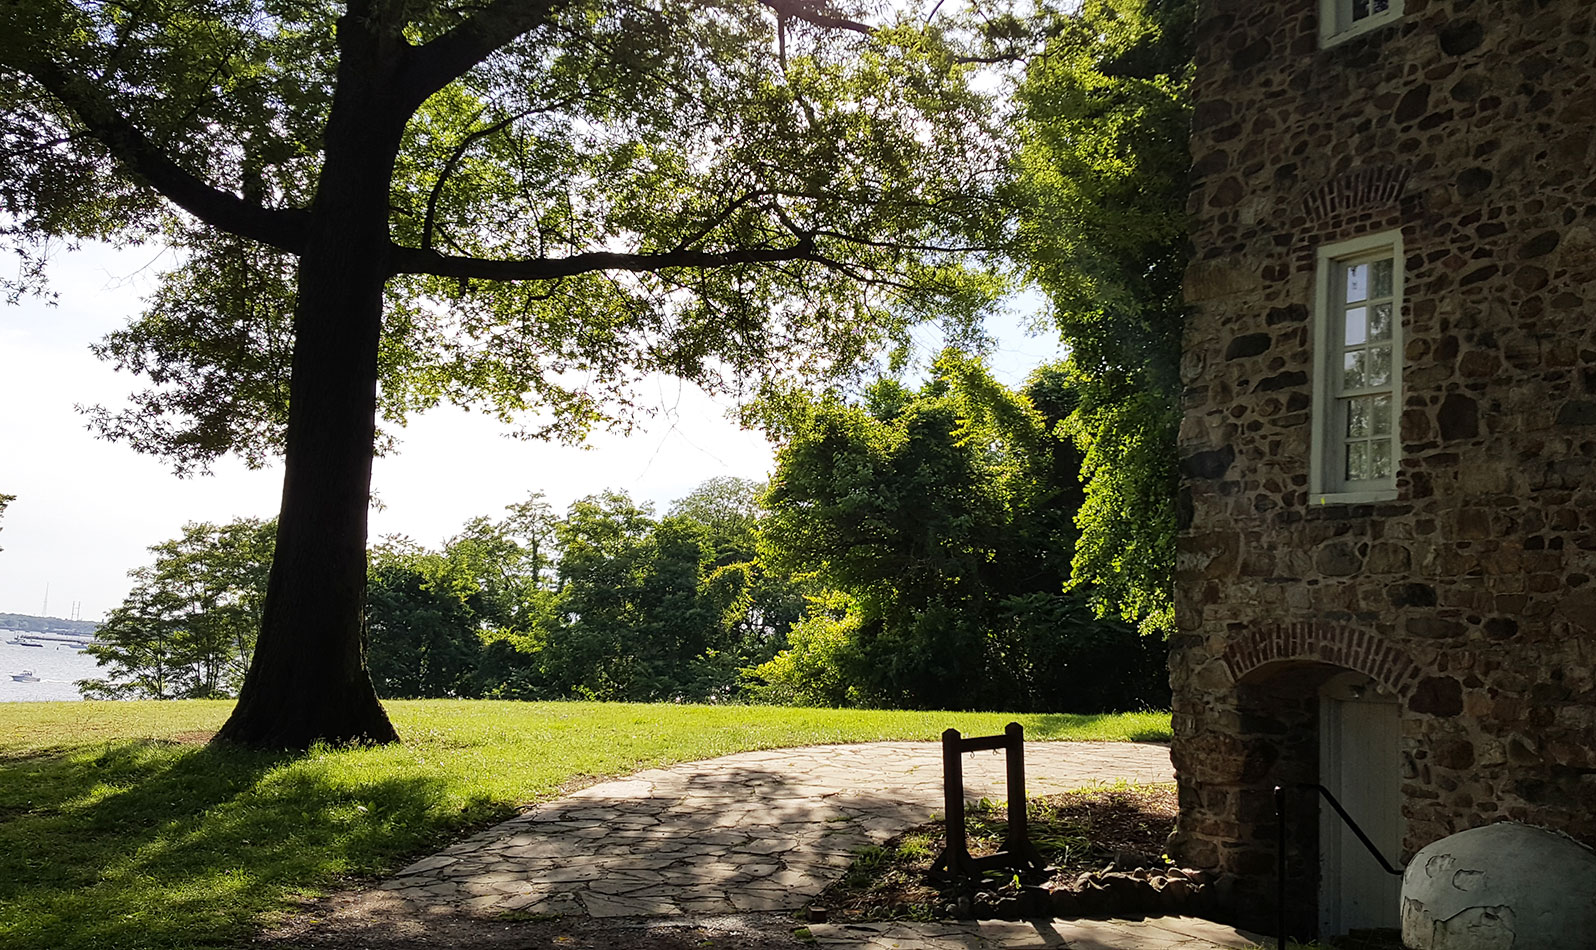 Spend some time exploring Conference House Park — NYC's southernmost park and home of a 17th-century manor on a hill that looks out over Raritan Bay.